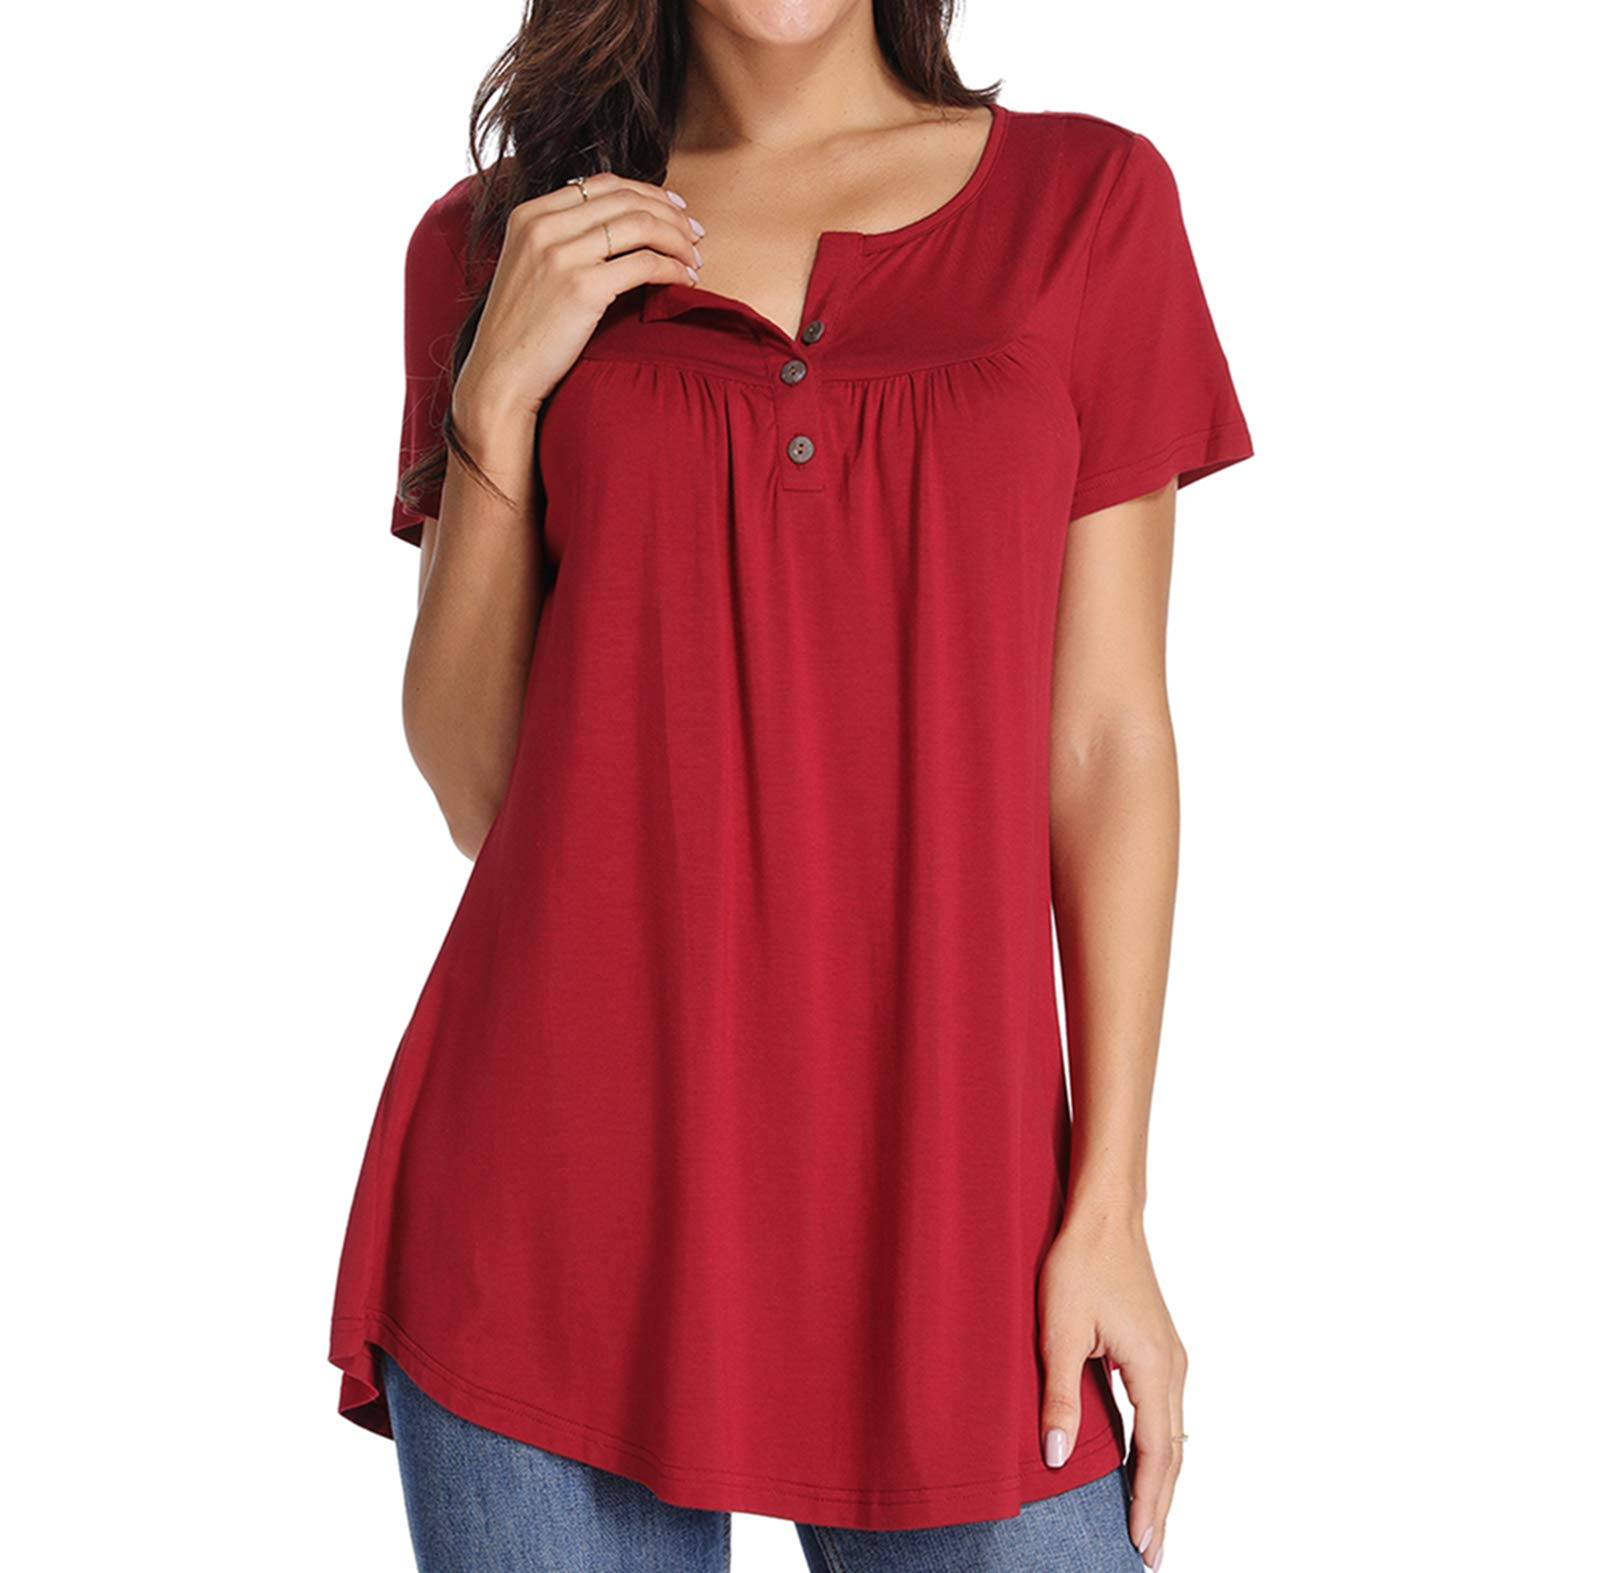 Xpenyo Women Short Sleeve Tops Henley Shirts V Neck Blouse Button Up Tunic Casual Tops